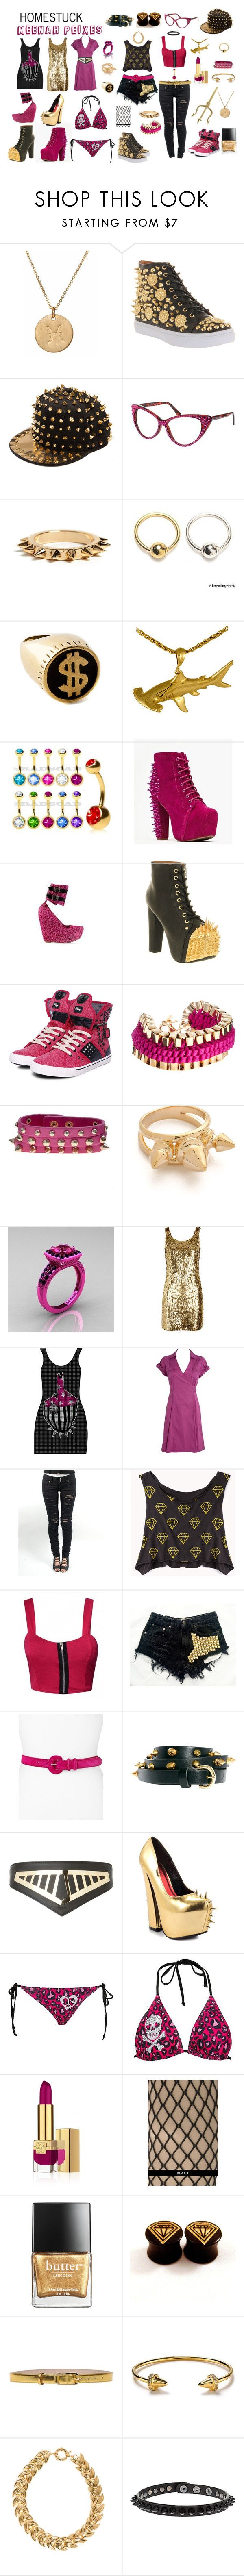 """""""Homestuck Fashion: Meenah Peixes"""" by khainsaw ❤ liked on Polyvore featuring Nashelle, Jeffrey Campbell, Talullah Tu, Maria Francesca Pepe, *Accessories Boutique, Pastry, John & Pearl, Noir Jewelry, Moschino and J by Jasper Conran"""